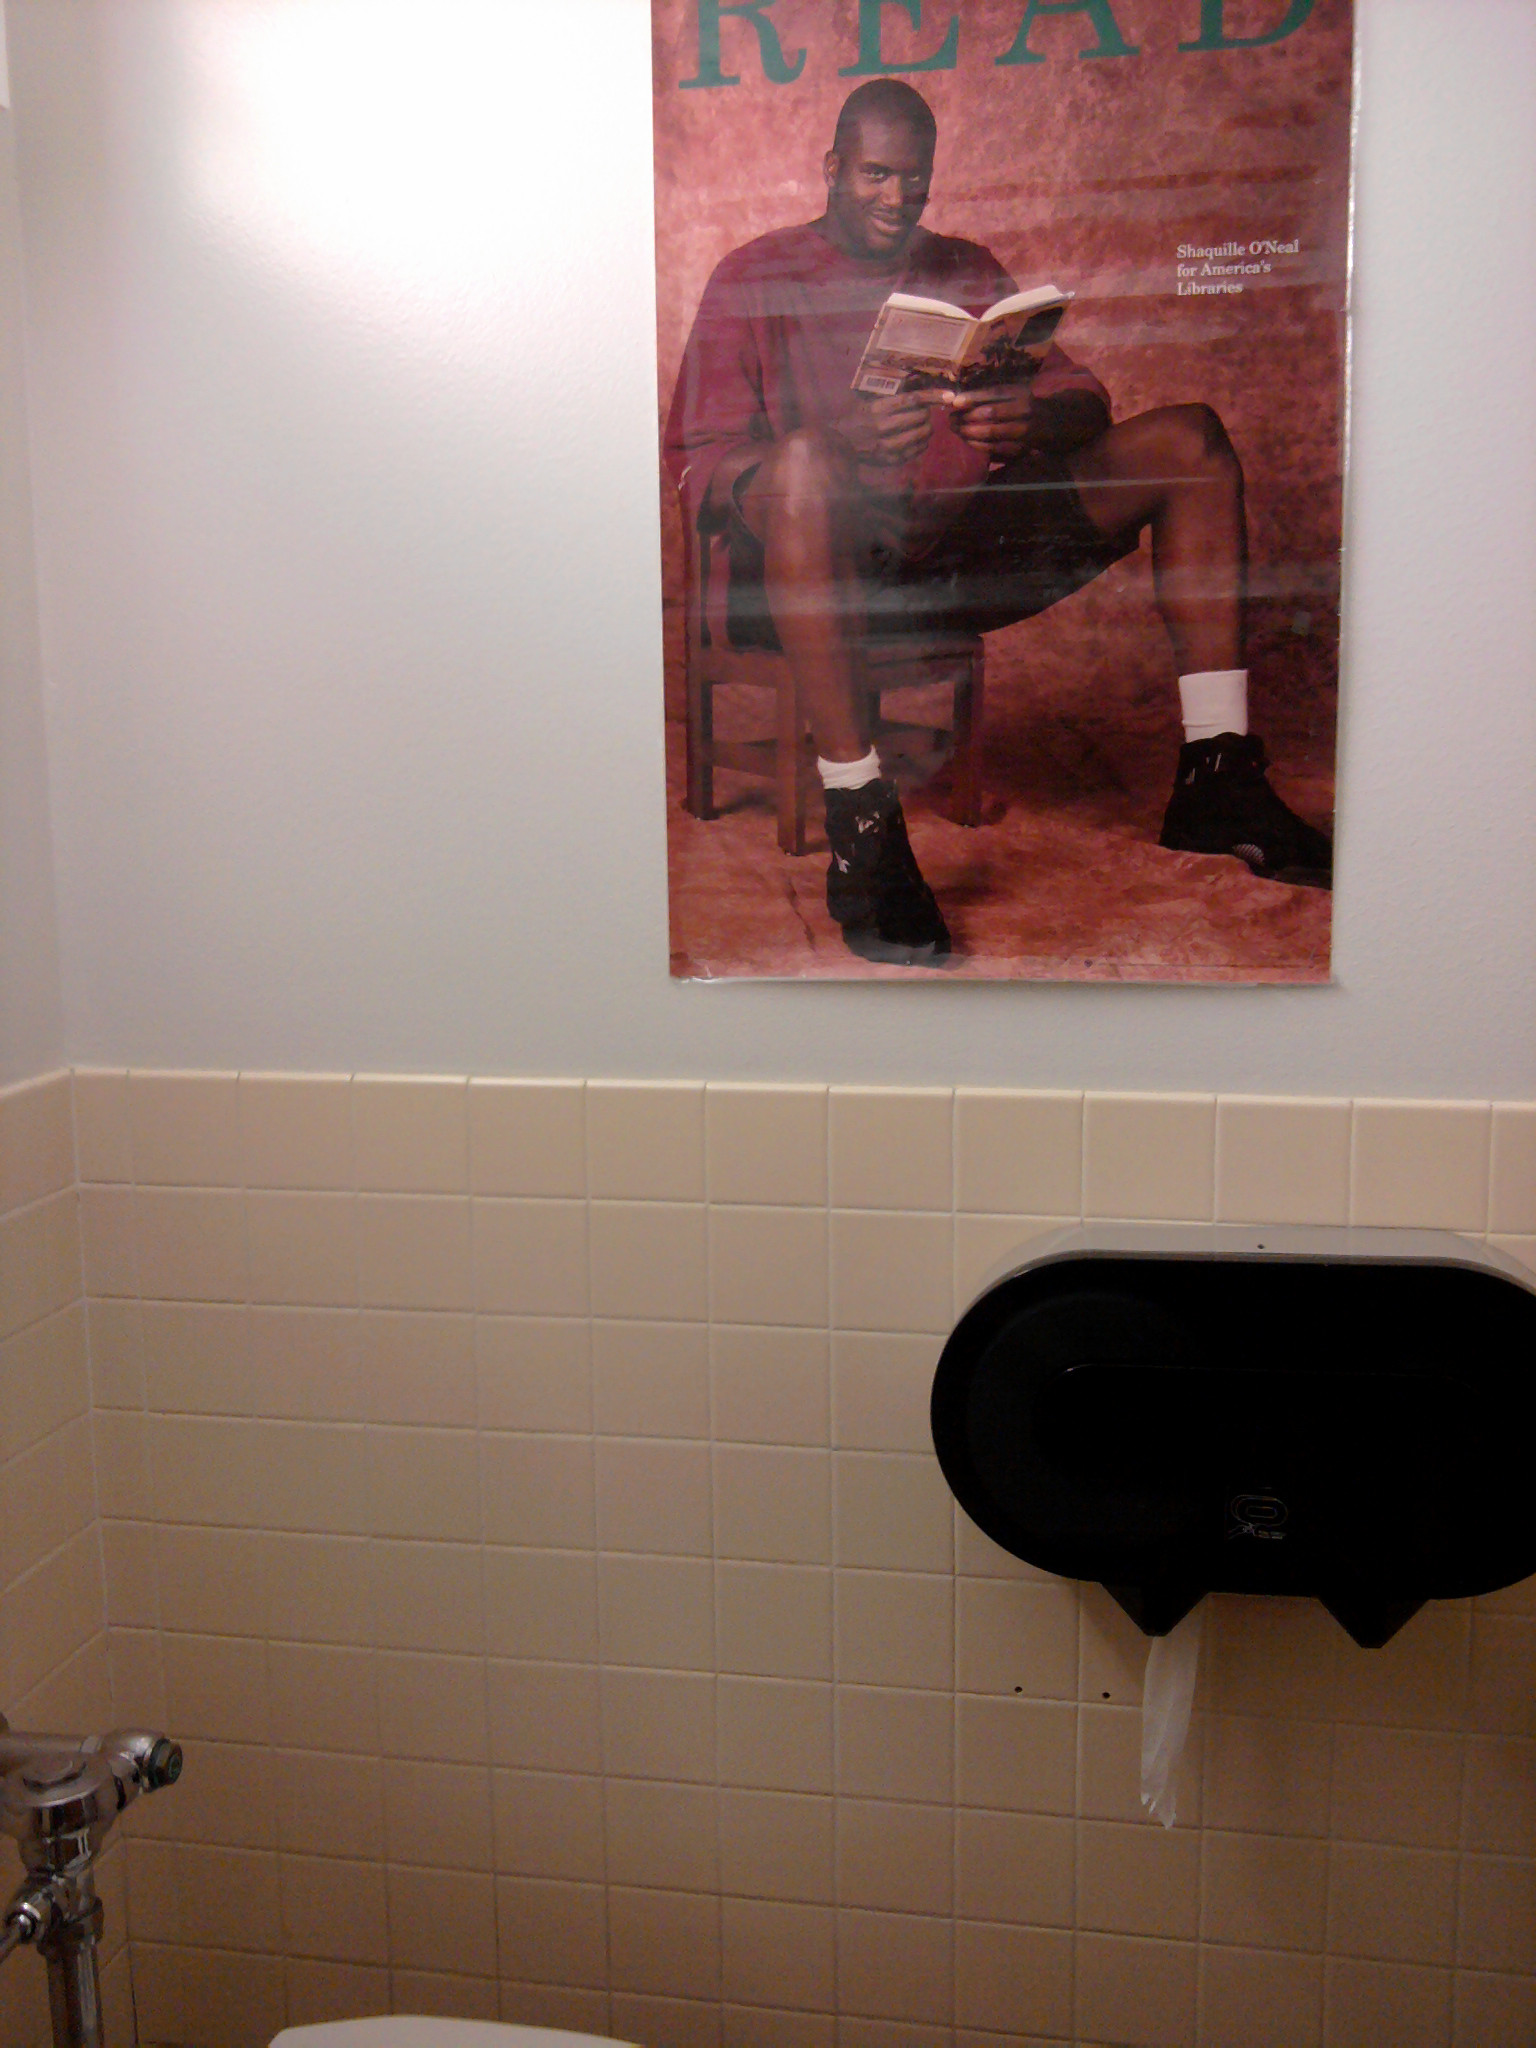 never pooping at work again - pichars.org